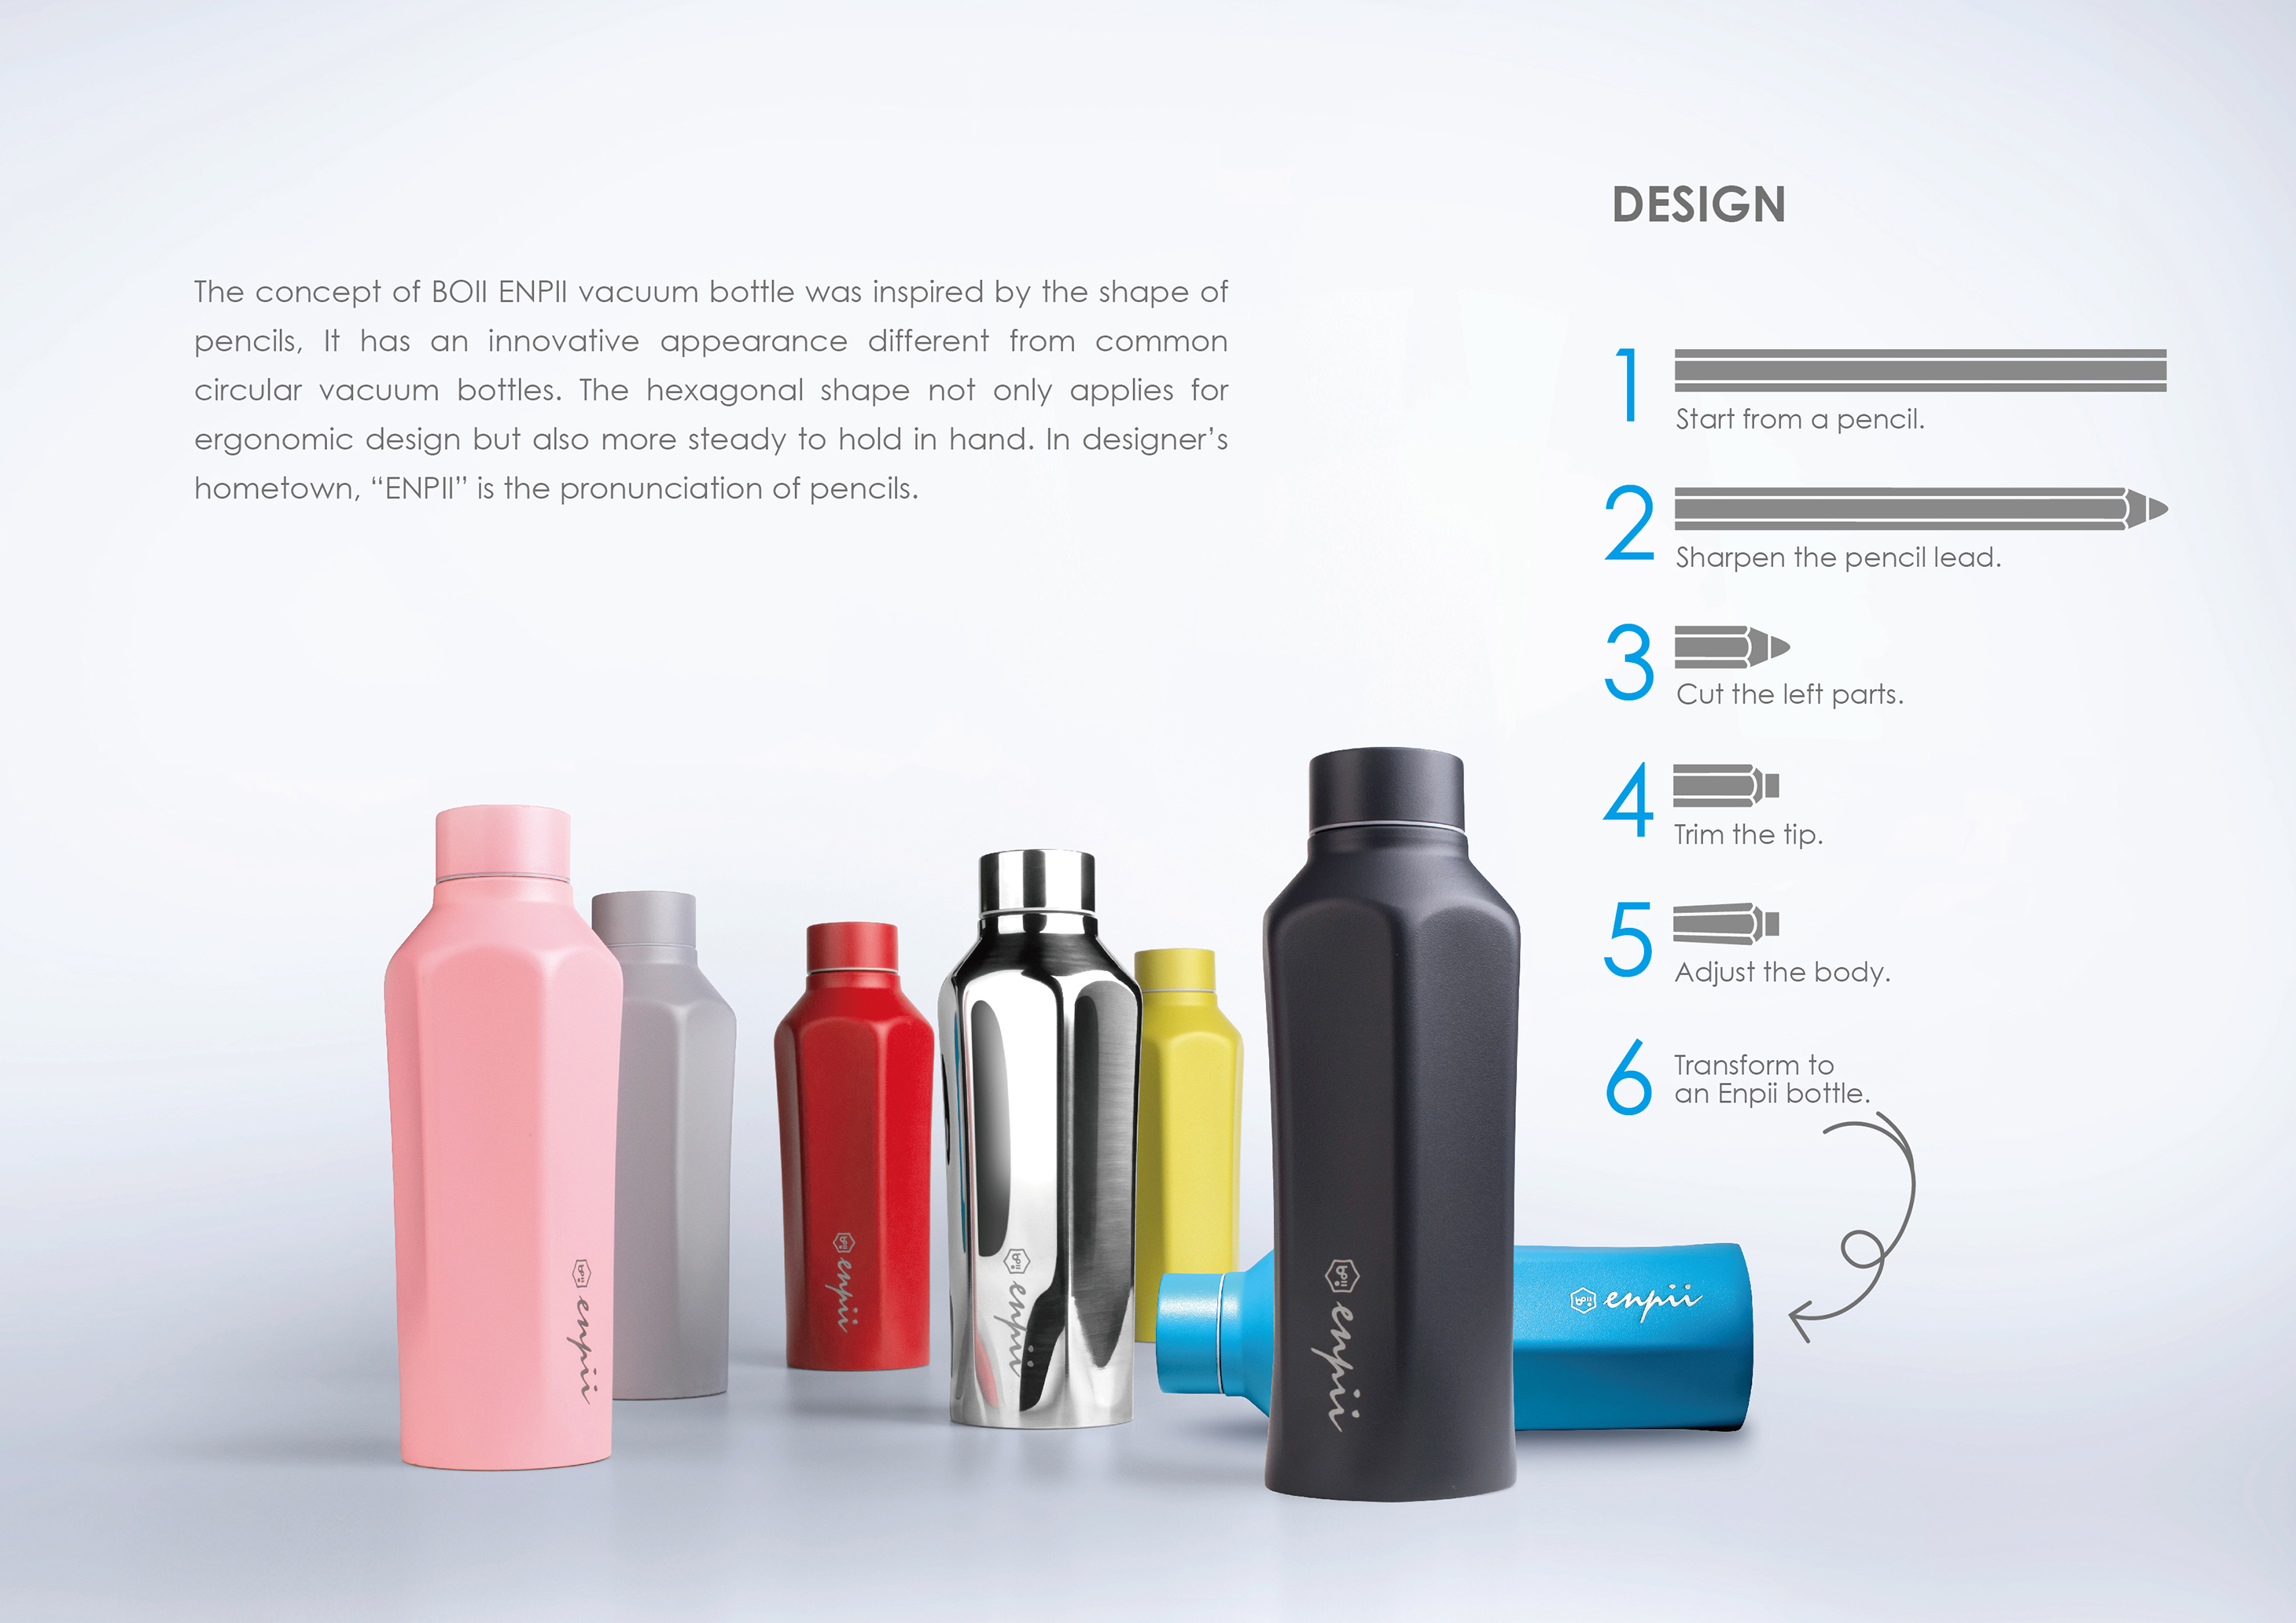 Enpii vacuum bottle